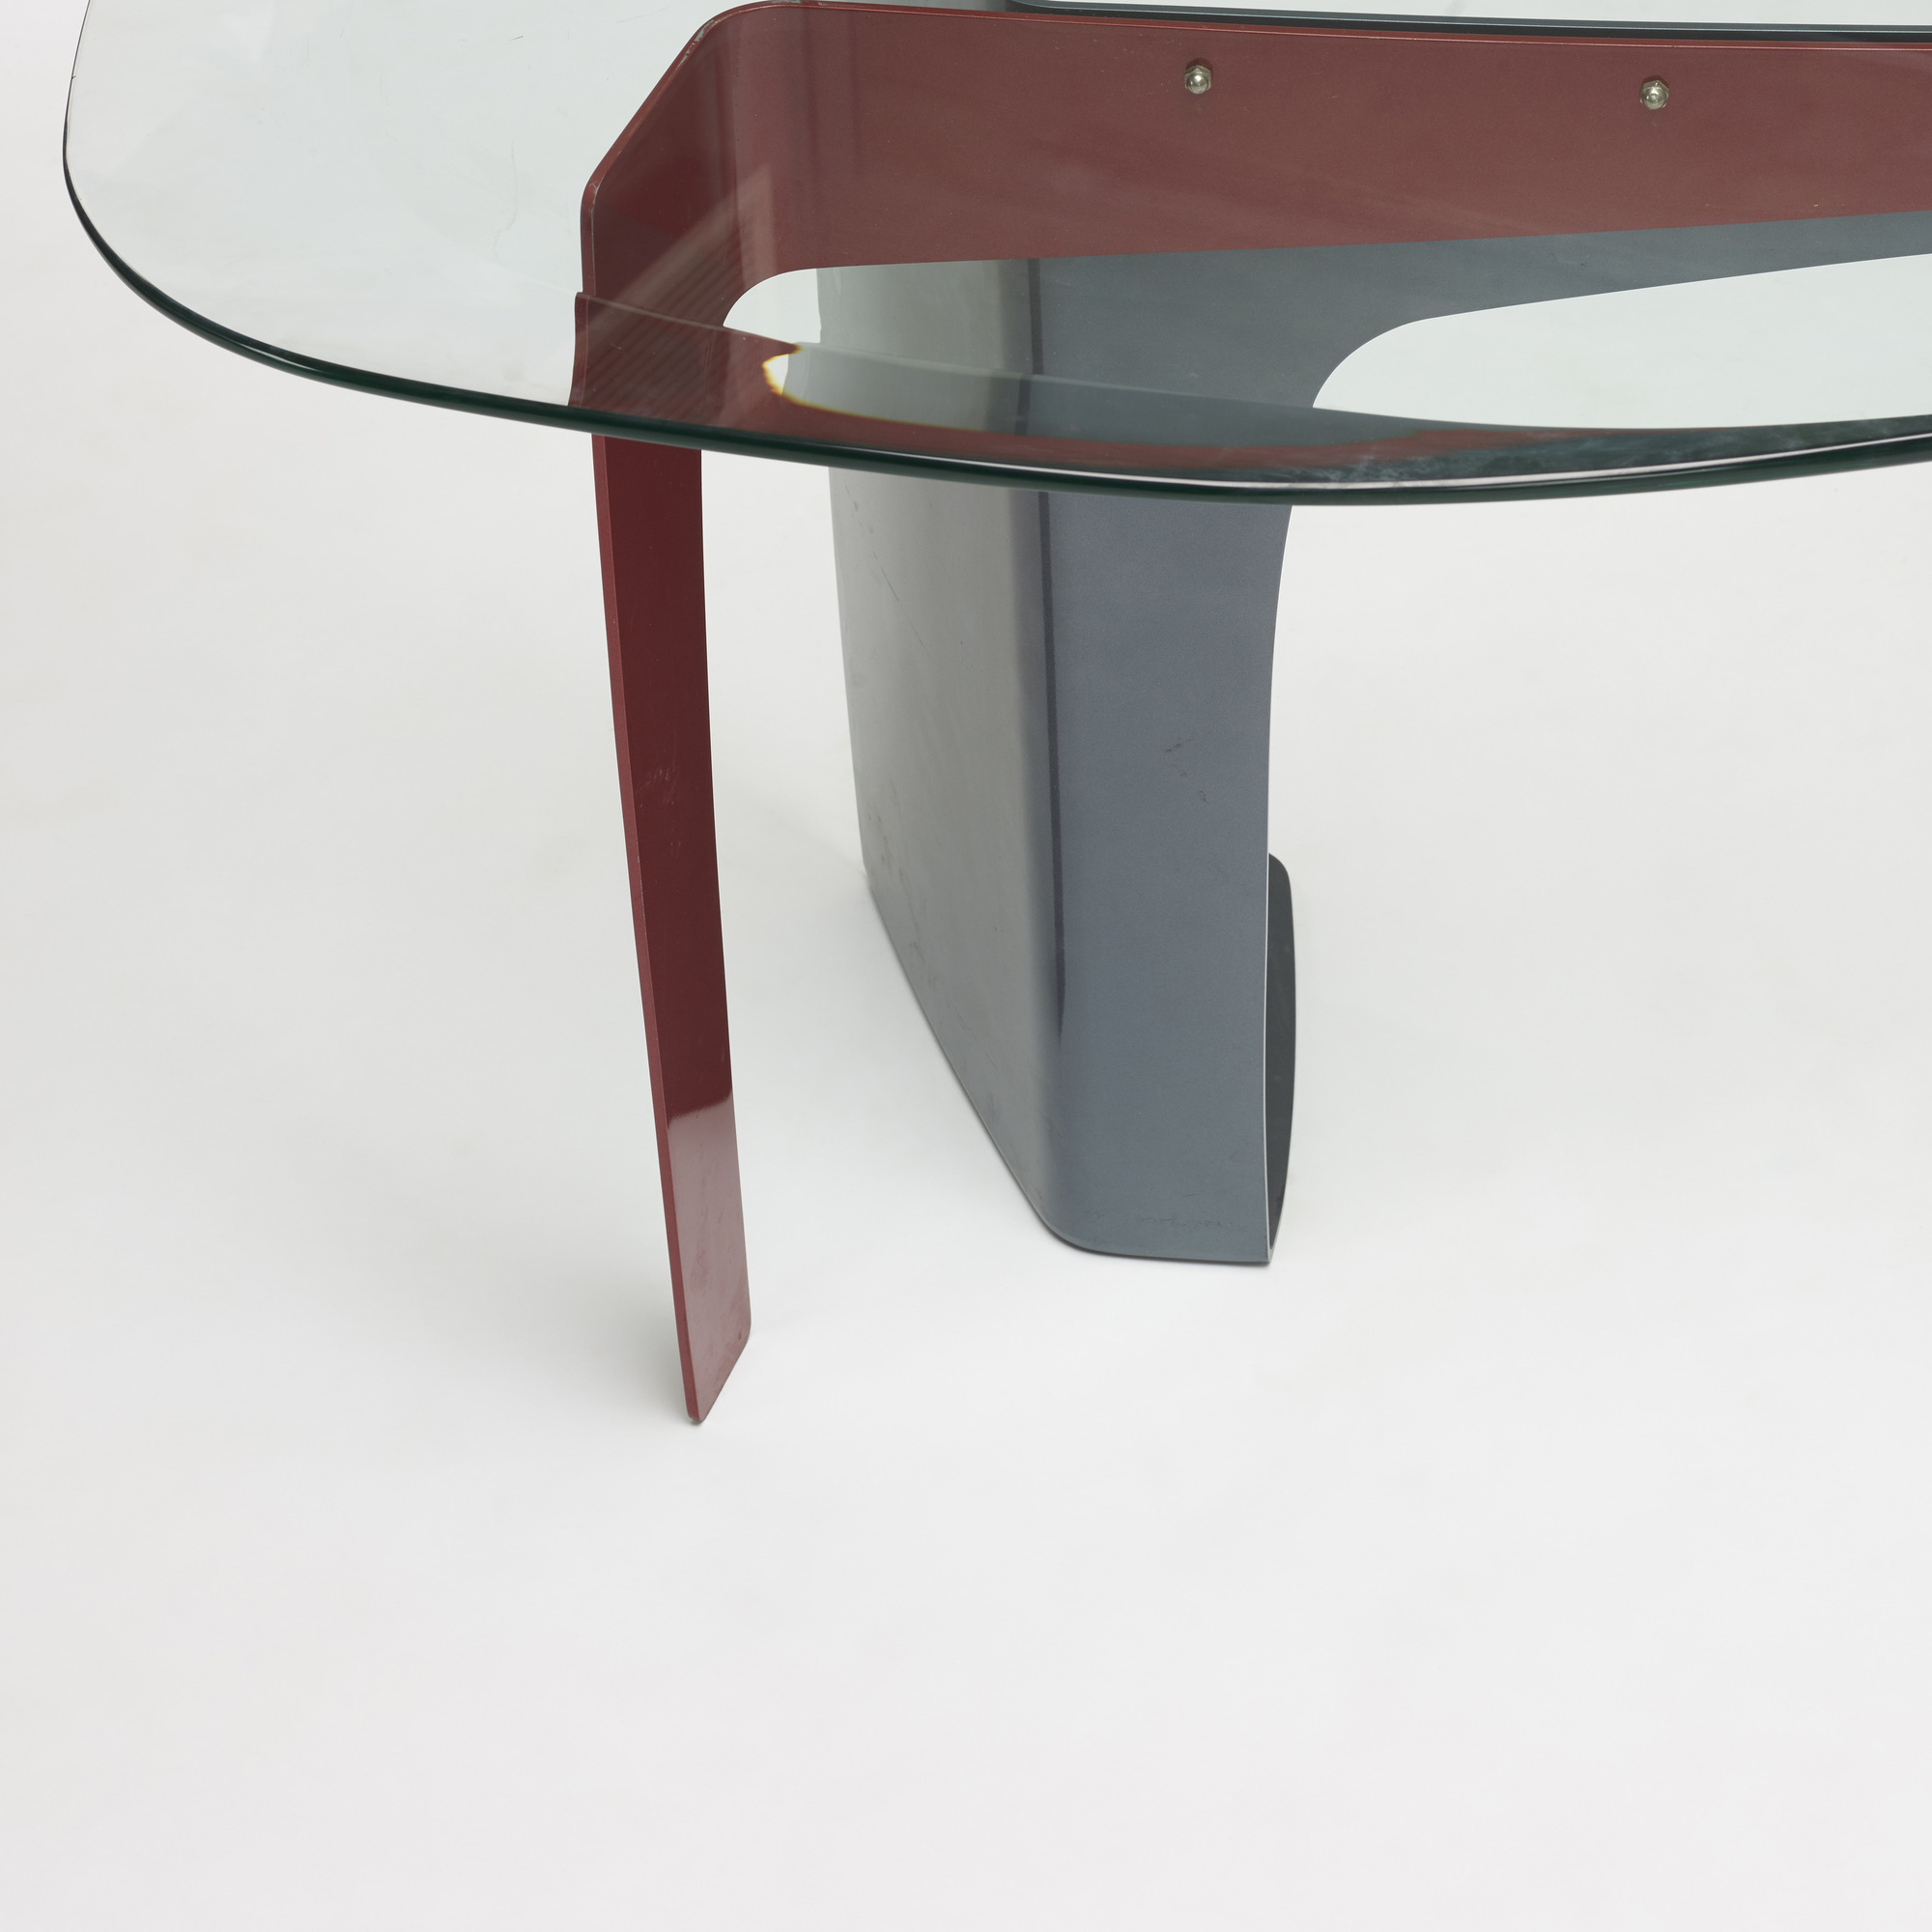 272: Ron Krueck and Mark Sexton / custom desk from Untitled No. 2, Chicago (4 of 4)